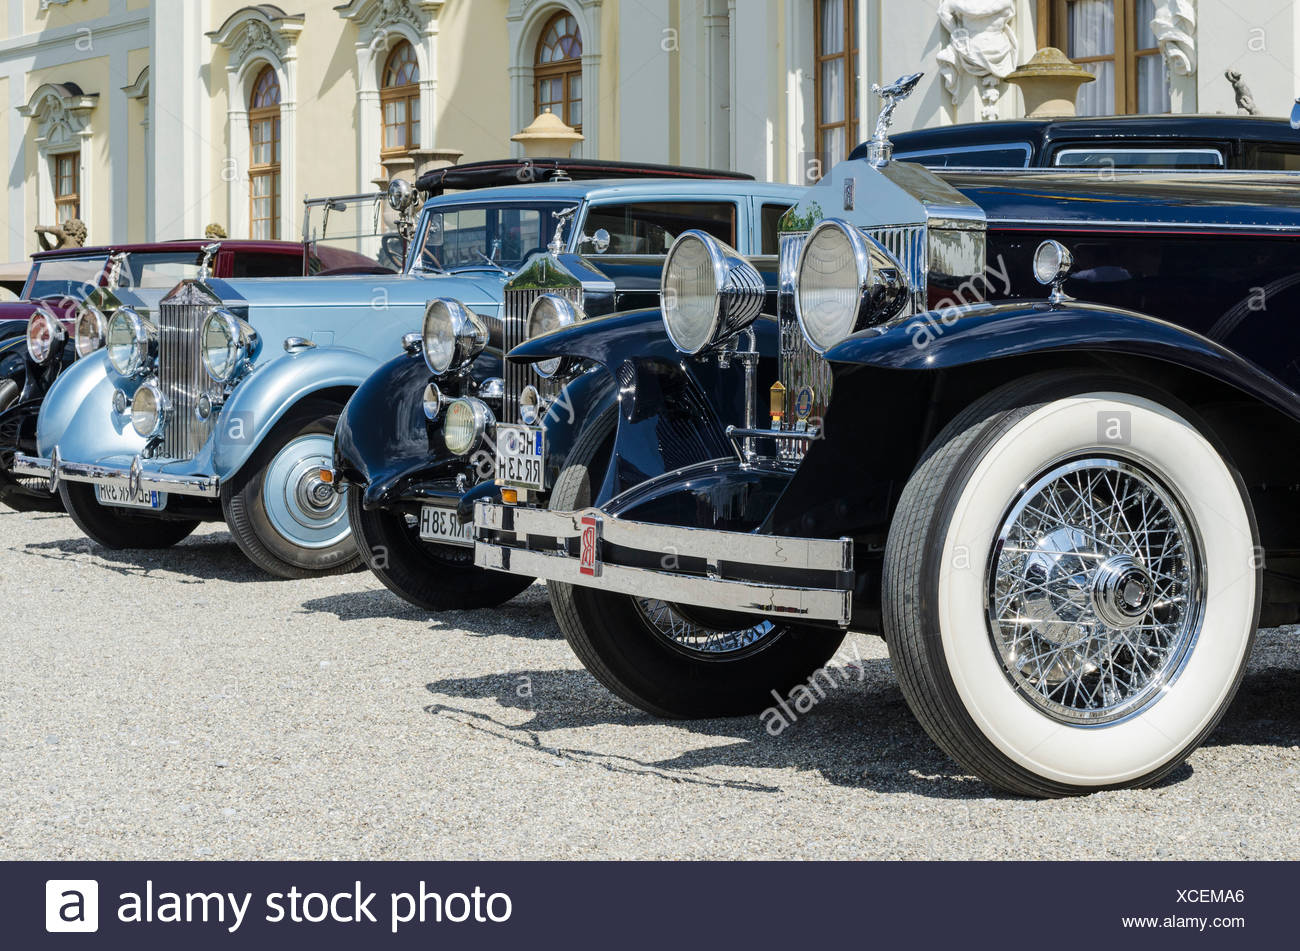 Historic, vintage Rolls-Royce cars are parked in front of Schloss Ludwigsburg Palace, festival of classic cars - Stock Image